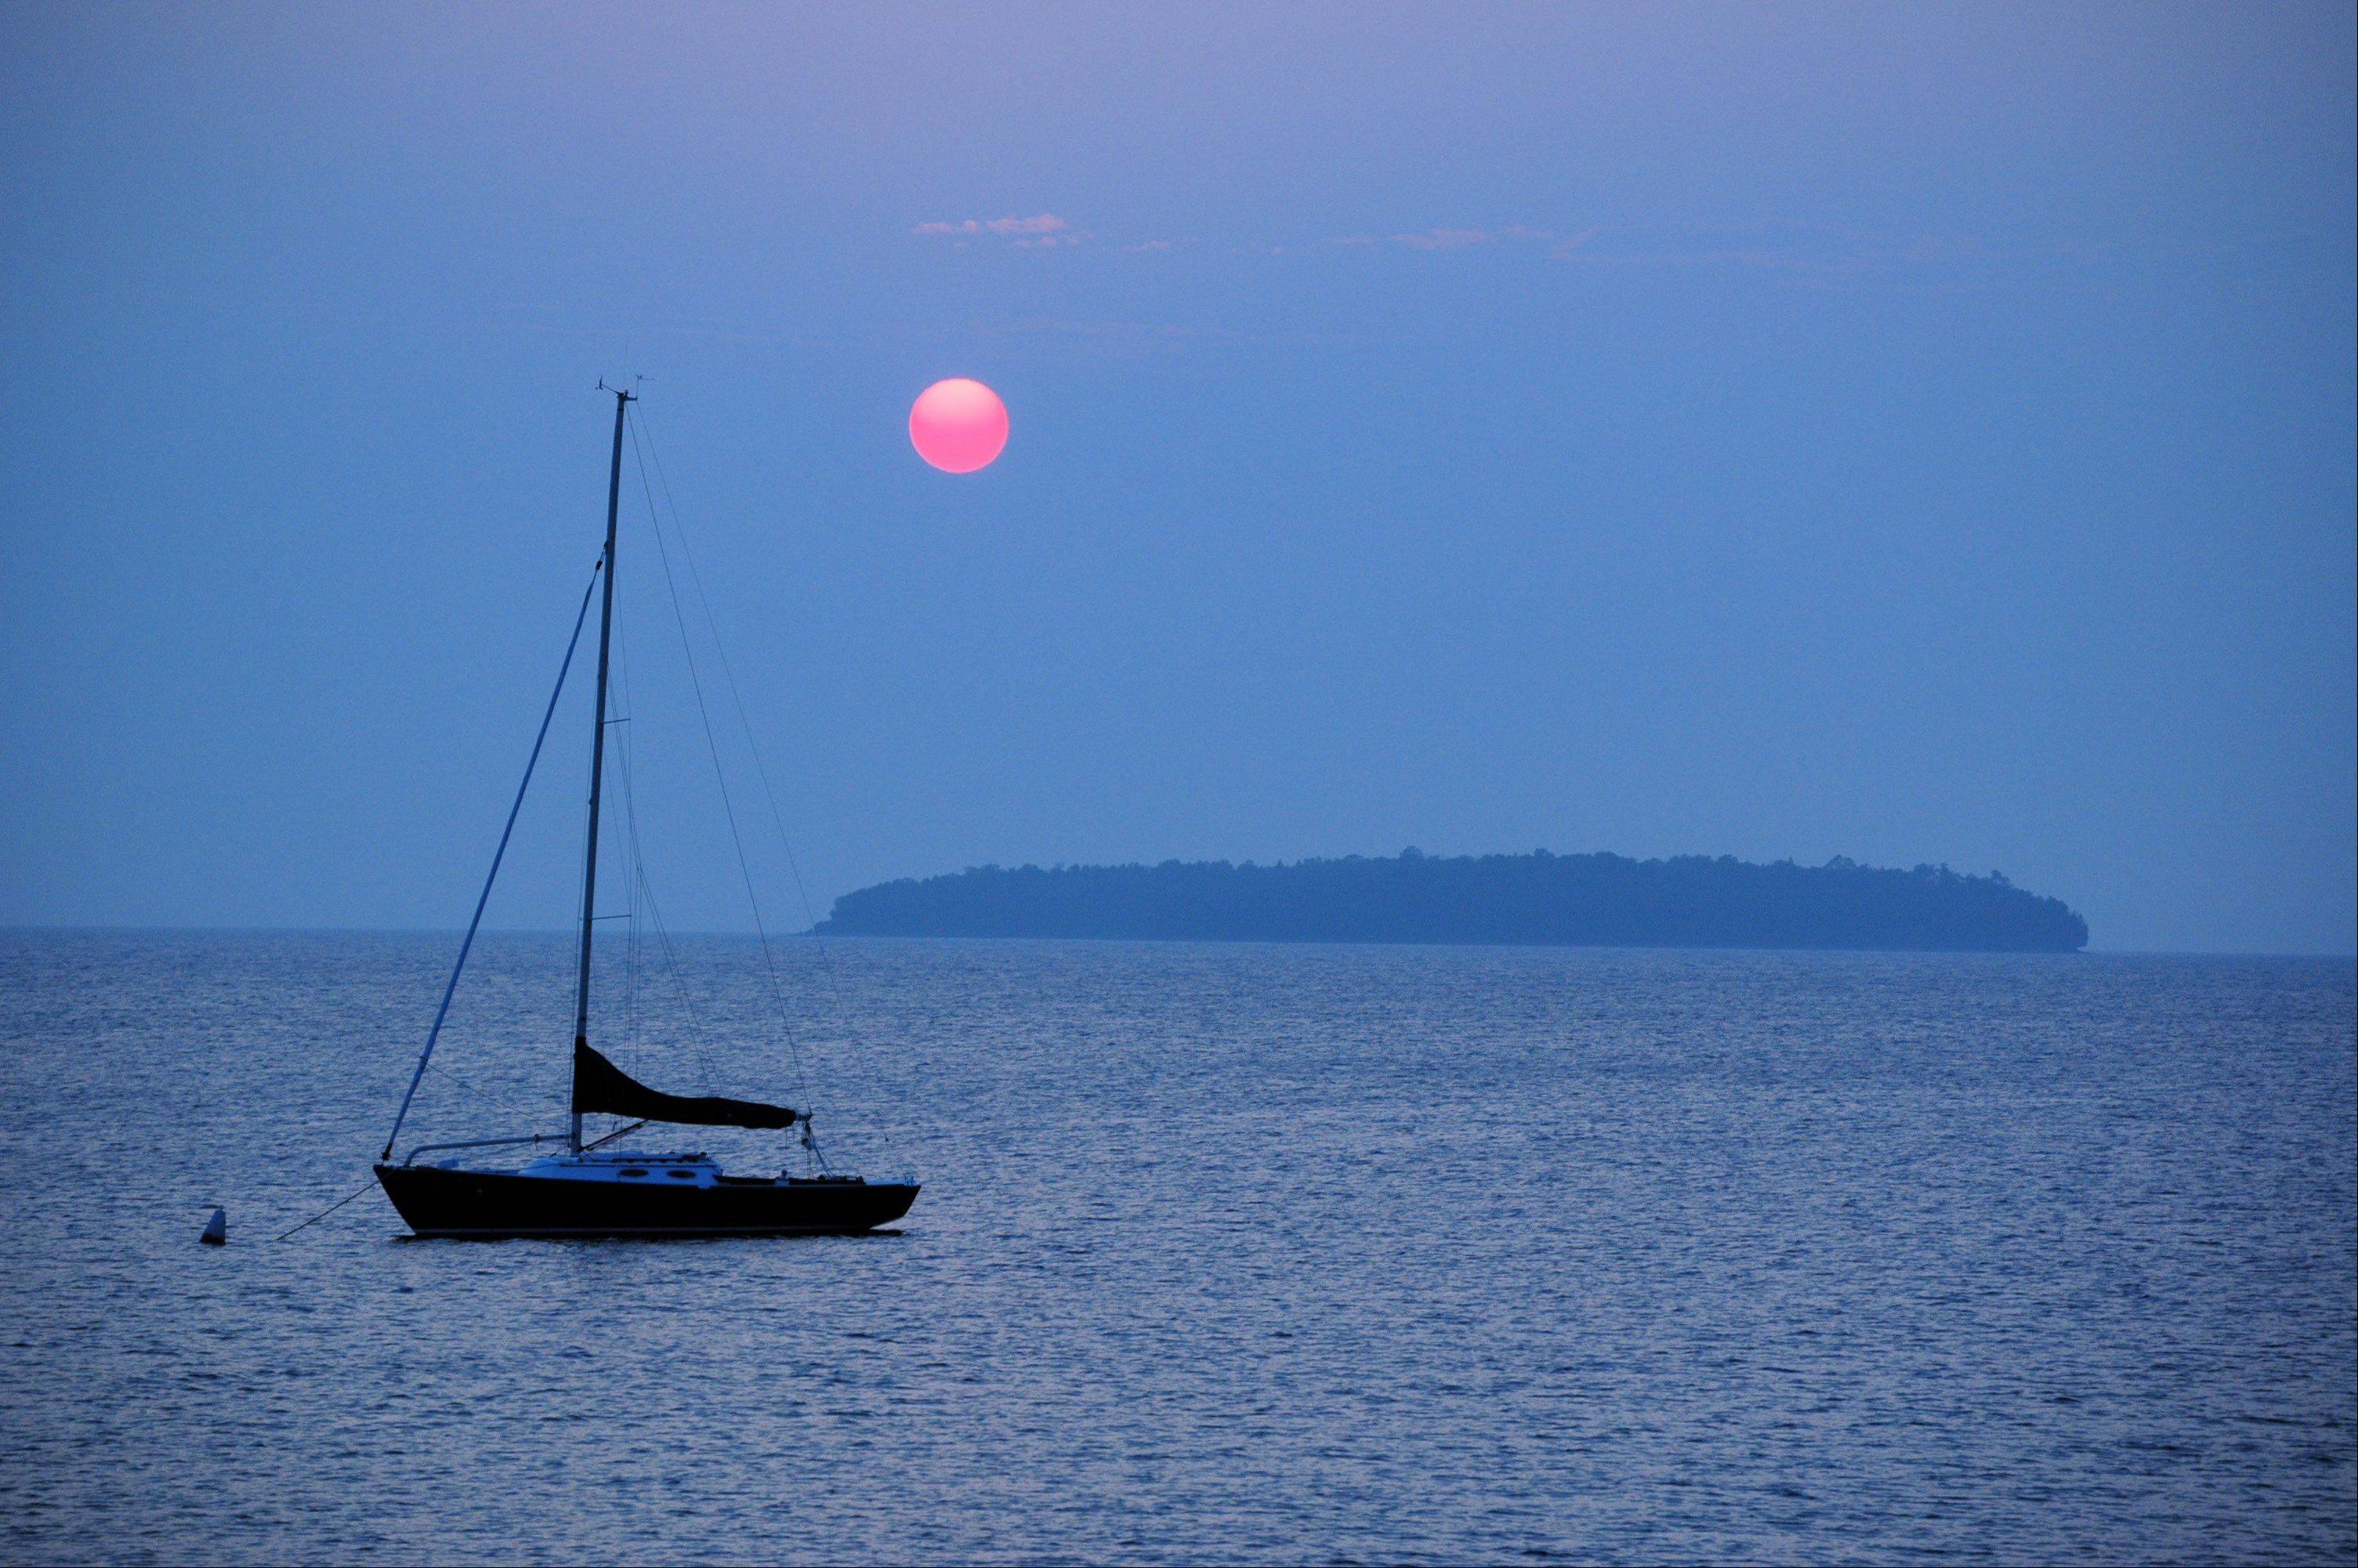 I photographed this tranquil scene of boat, sunset, and island each summer on trips to Ephraim in Door County. Then one summer the boat was gone! Since then, the sunsets from this viewpoint have not felt the same.